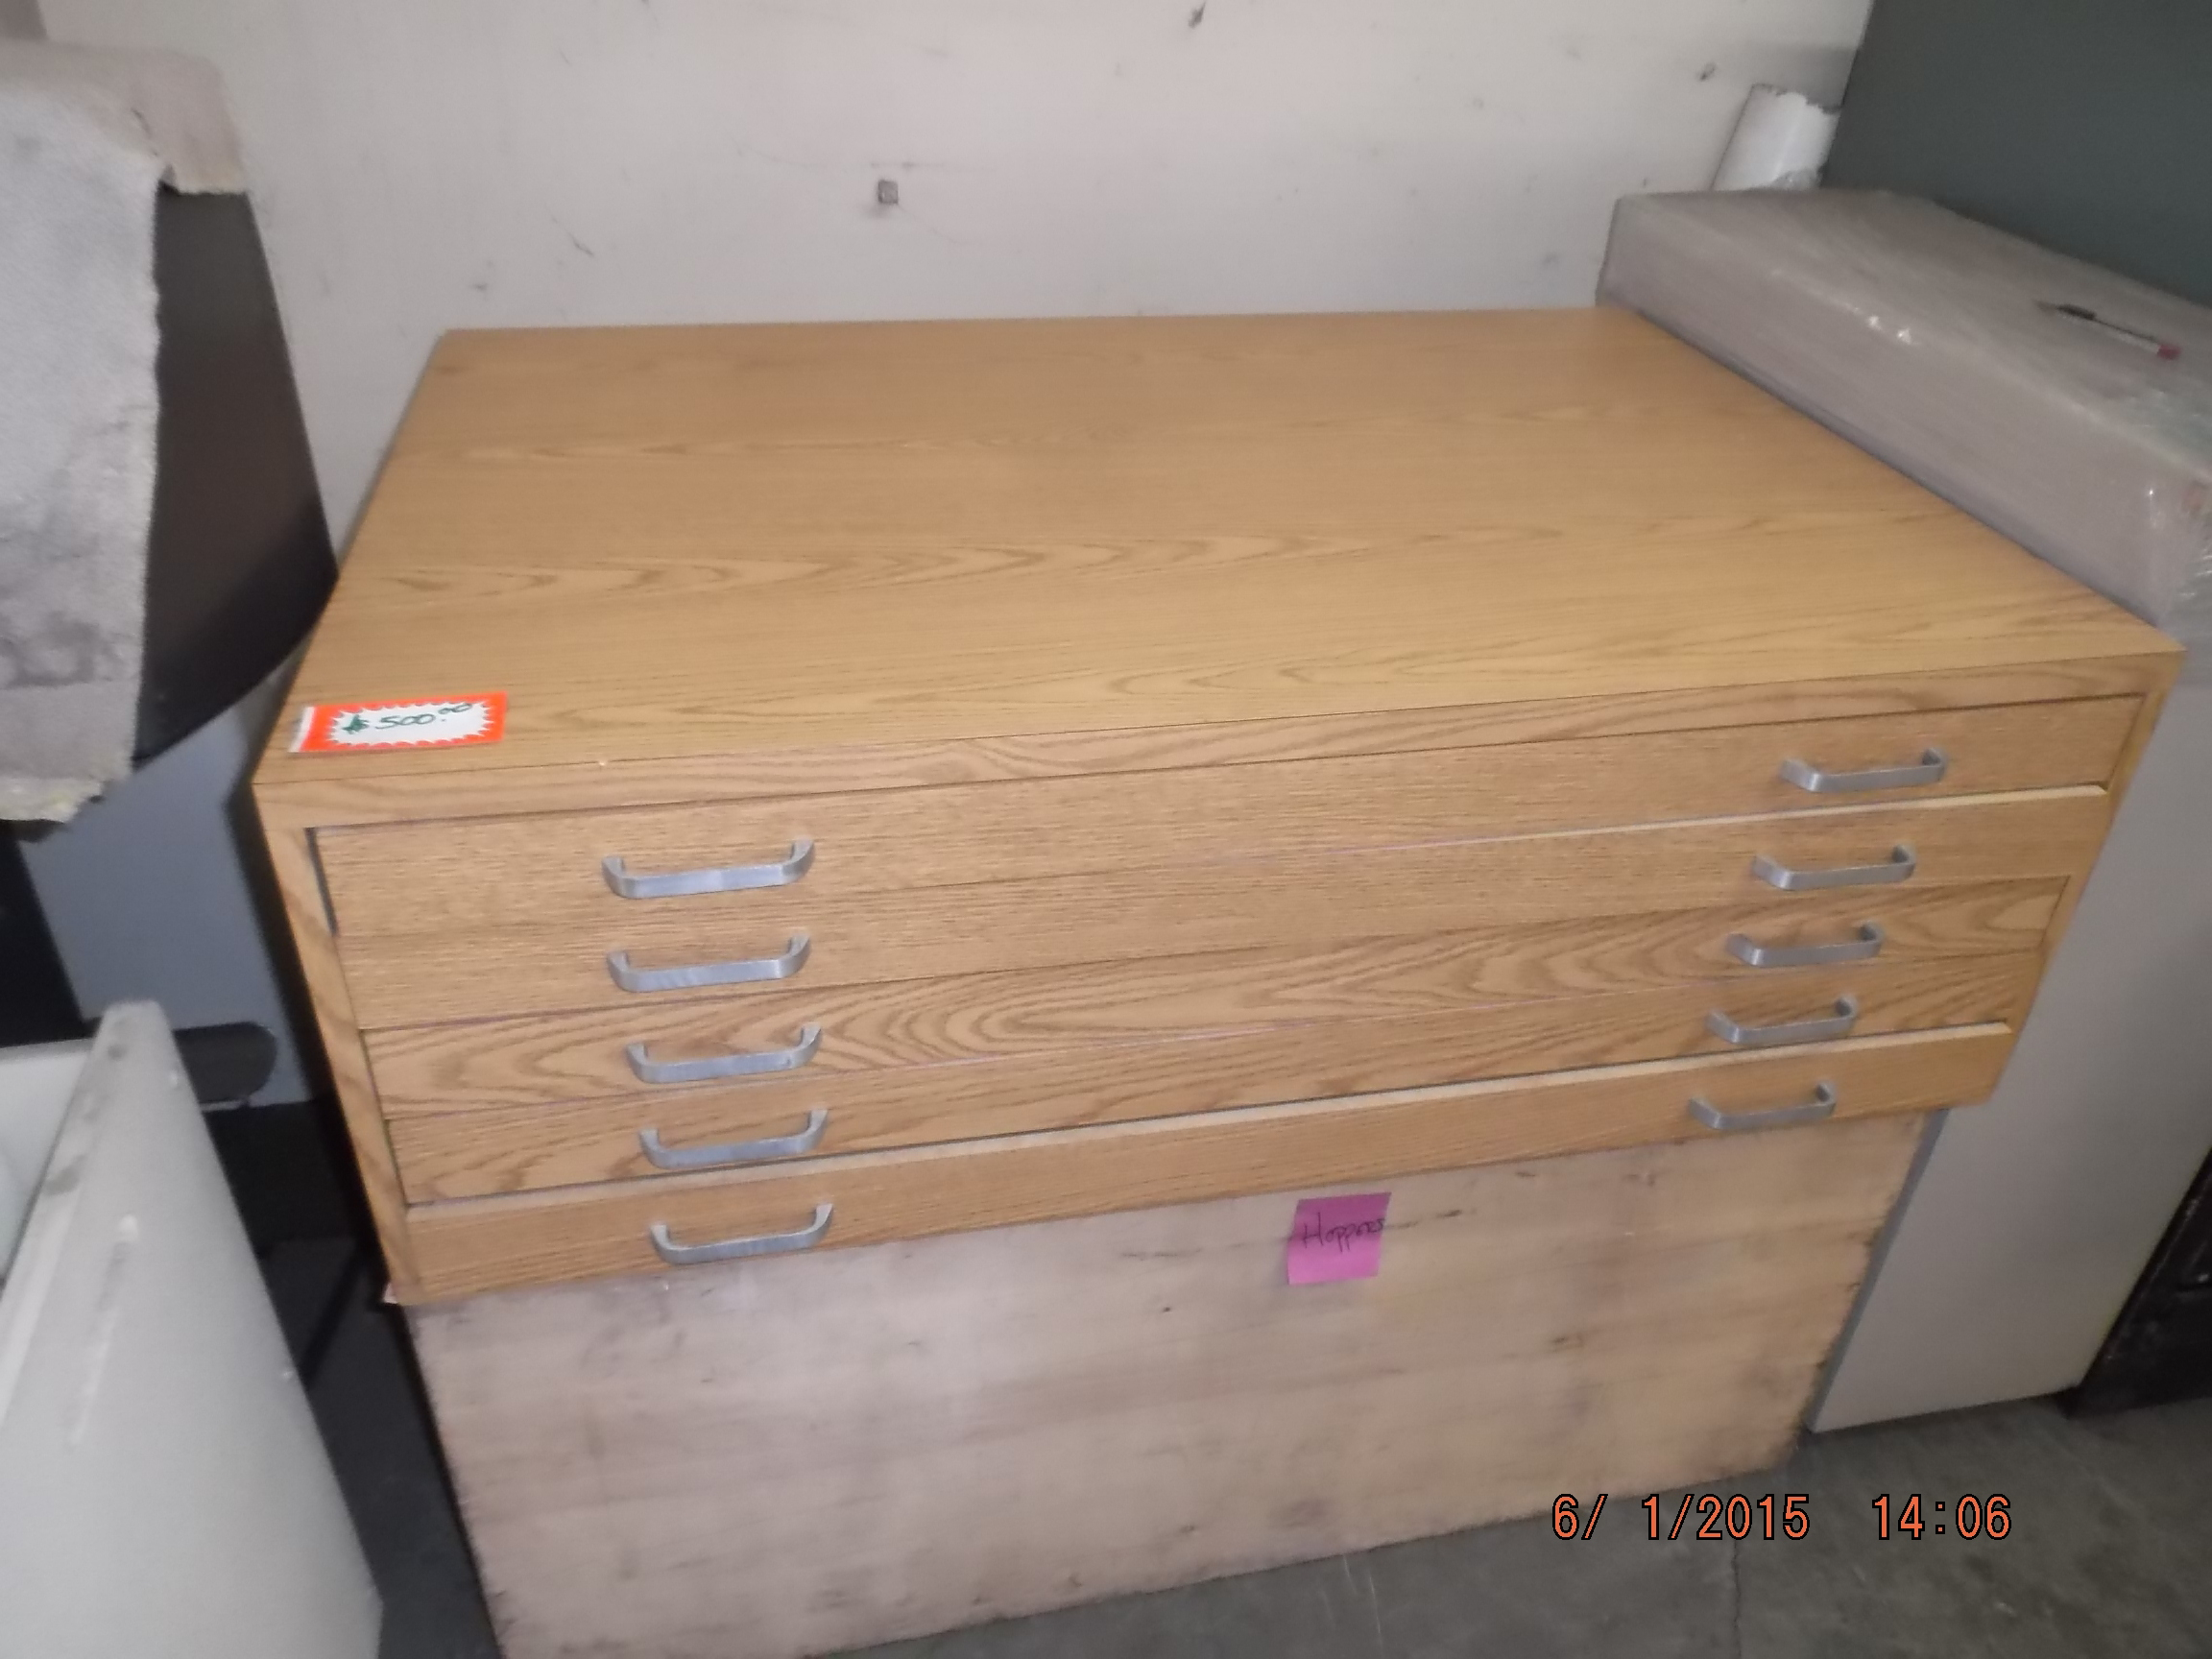 Used flat files roll files plan racks hoppers drafting furniture malvernweather Image collections